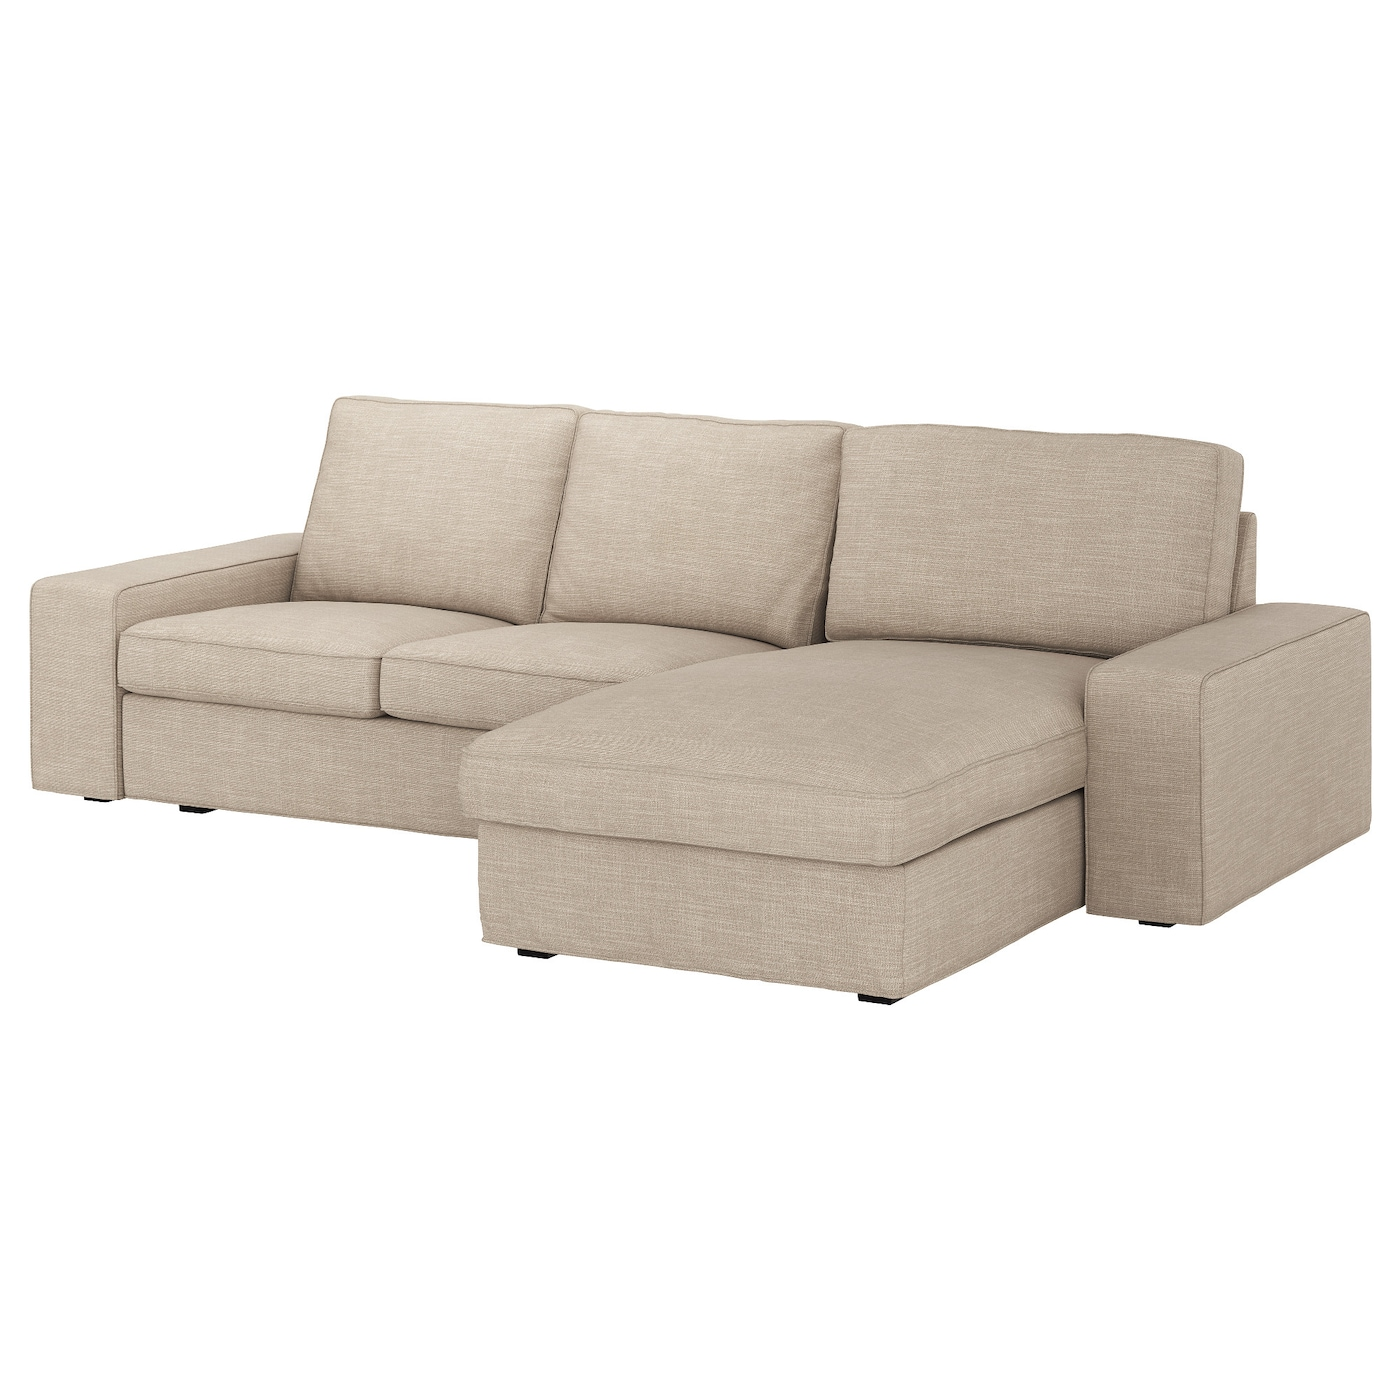 Kivik 3 seat sofa with chaise longue hillared beige ikea for 3 seater lounge with chaise